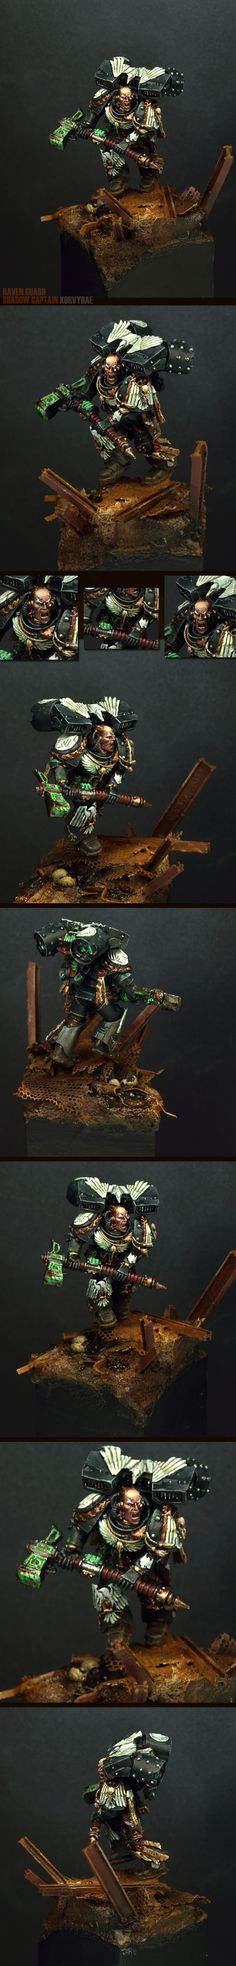 Korvydae is the Shadow Captain of the 10th Company of the Raven Guard Space Marine Chapter and the Chapter's Master of Recruits. Korvydae is renowned as an efficient raider and saboteur, who uses Scout Marines and Assault Marines to launch devastating lightning assaults against the foe